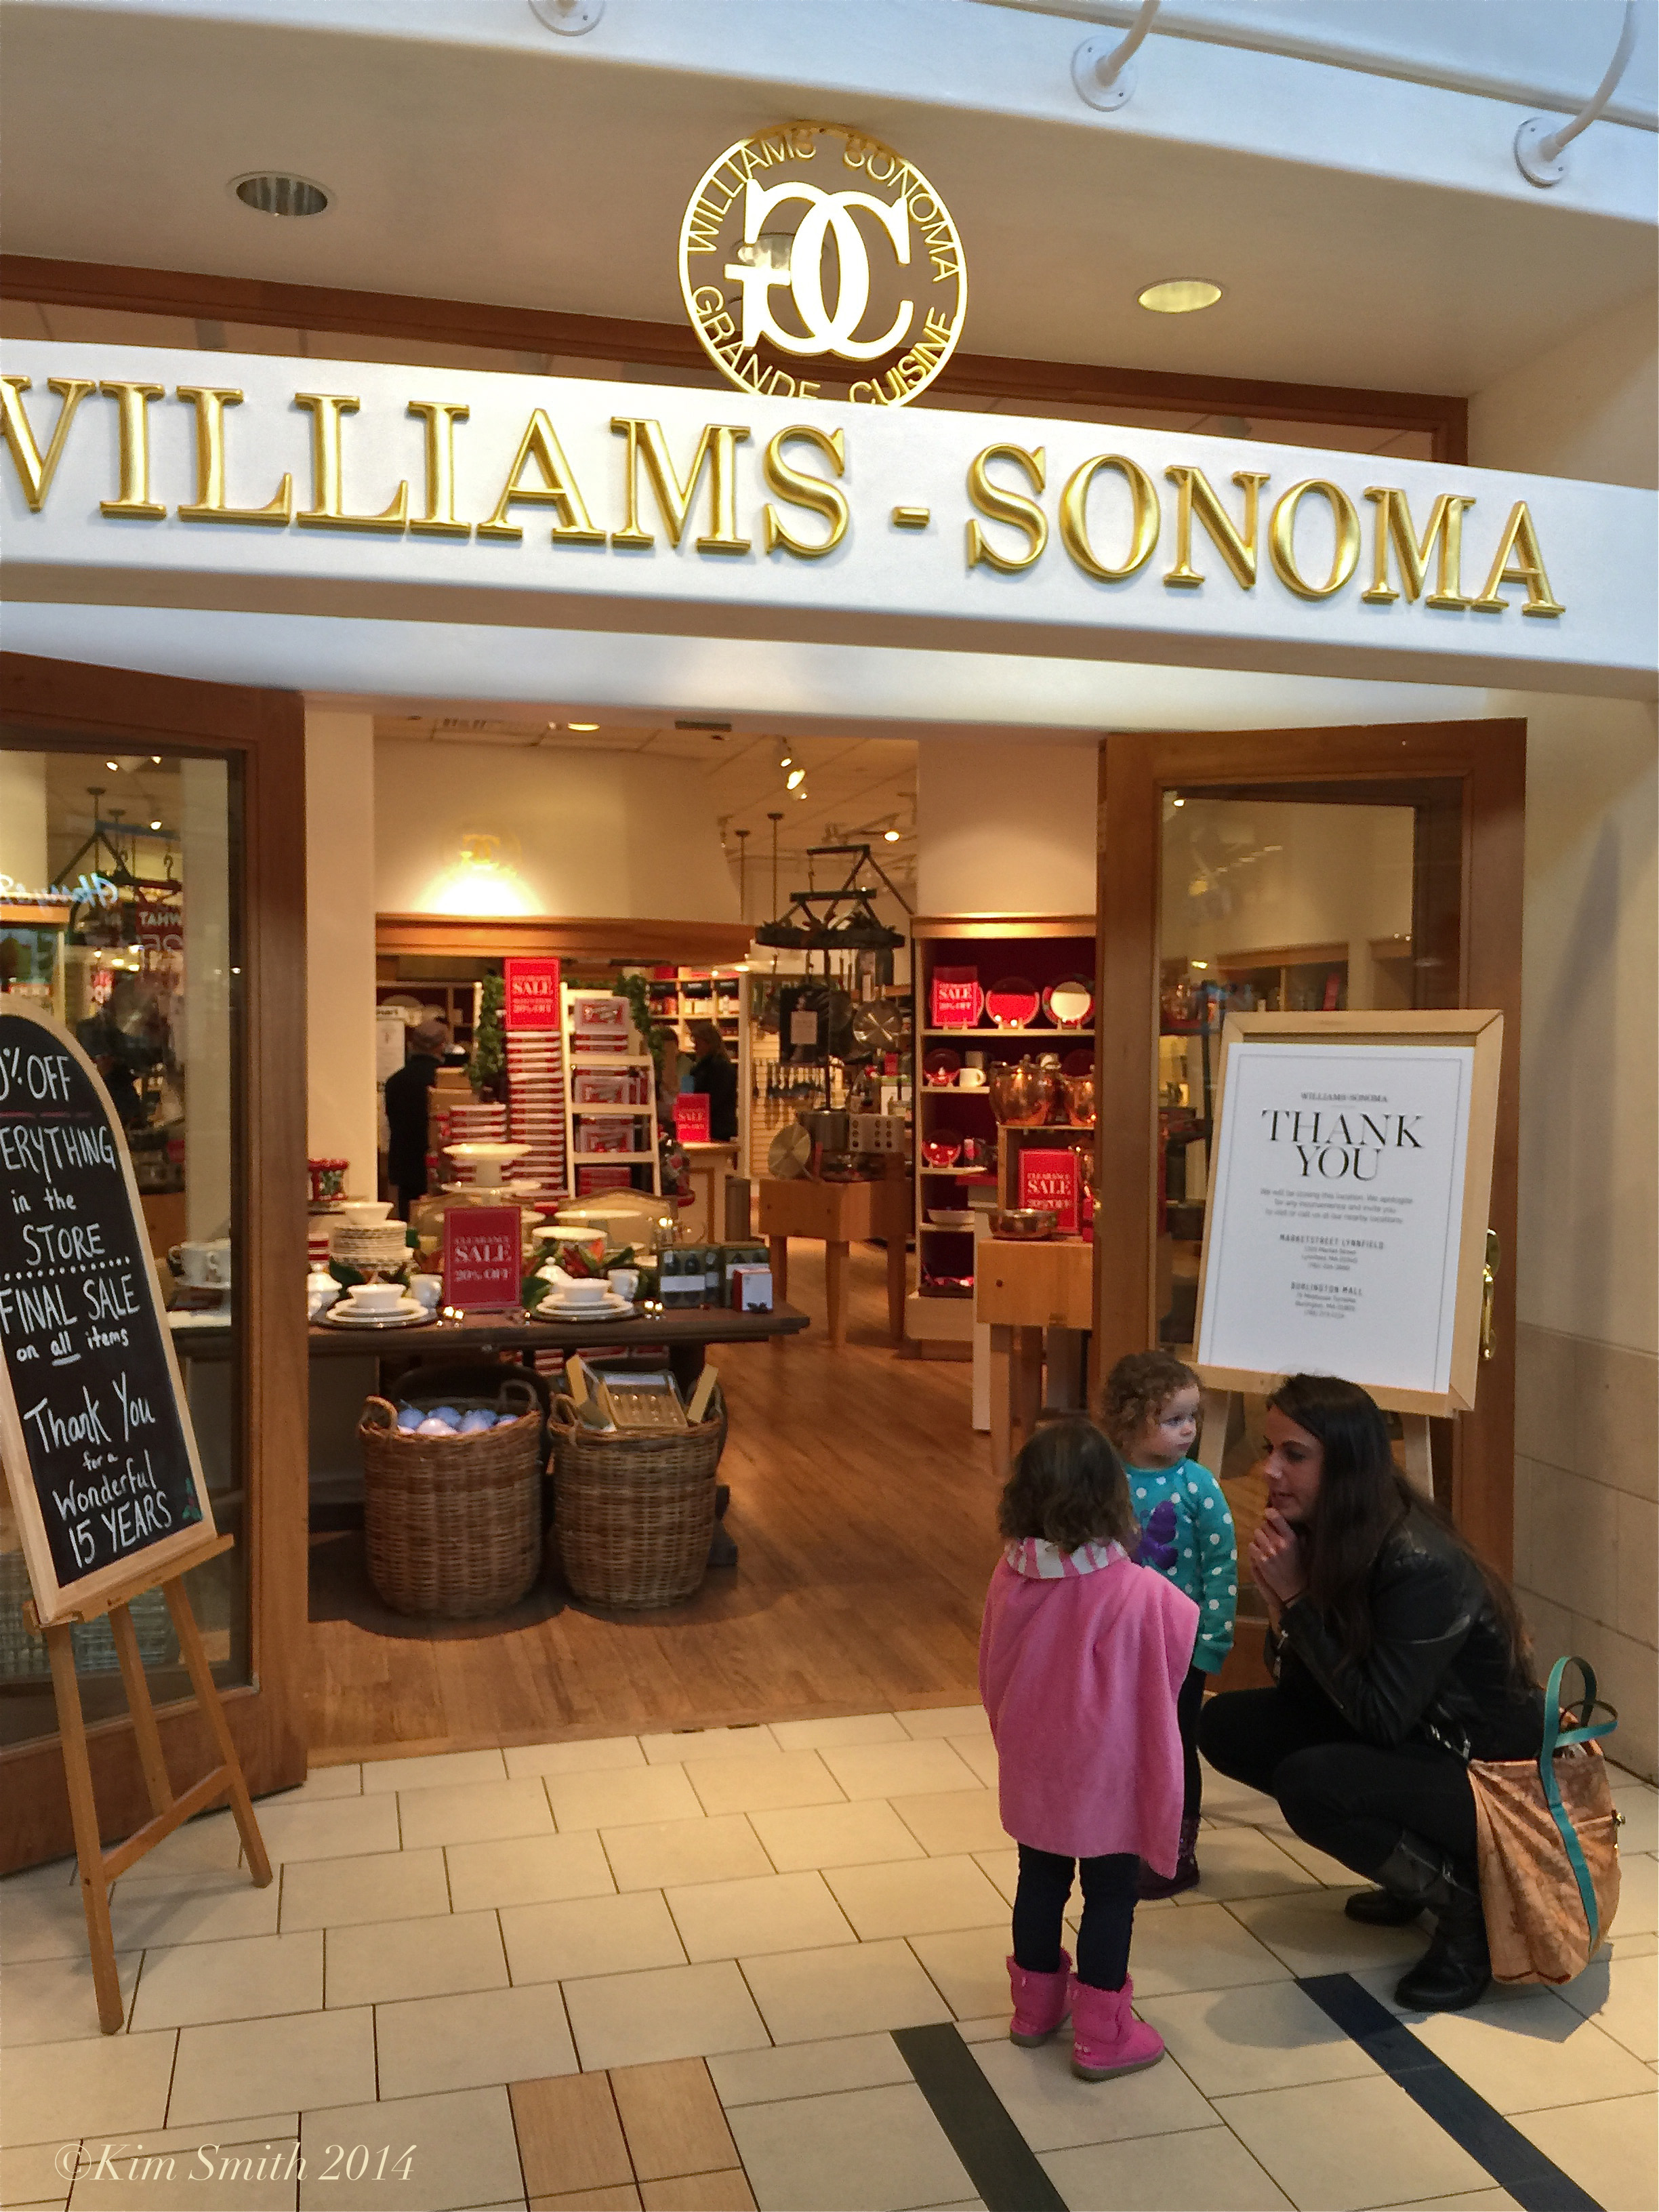 william sonoma Williams-sonoma is an overpriced, over rated specialty home furnishings retailer who only cares about their billion dollars plus bottom line they don't care about their customers' safety.